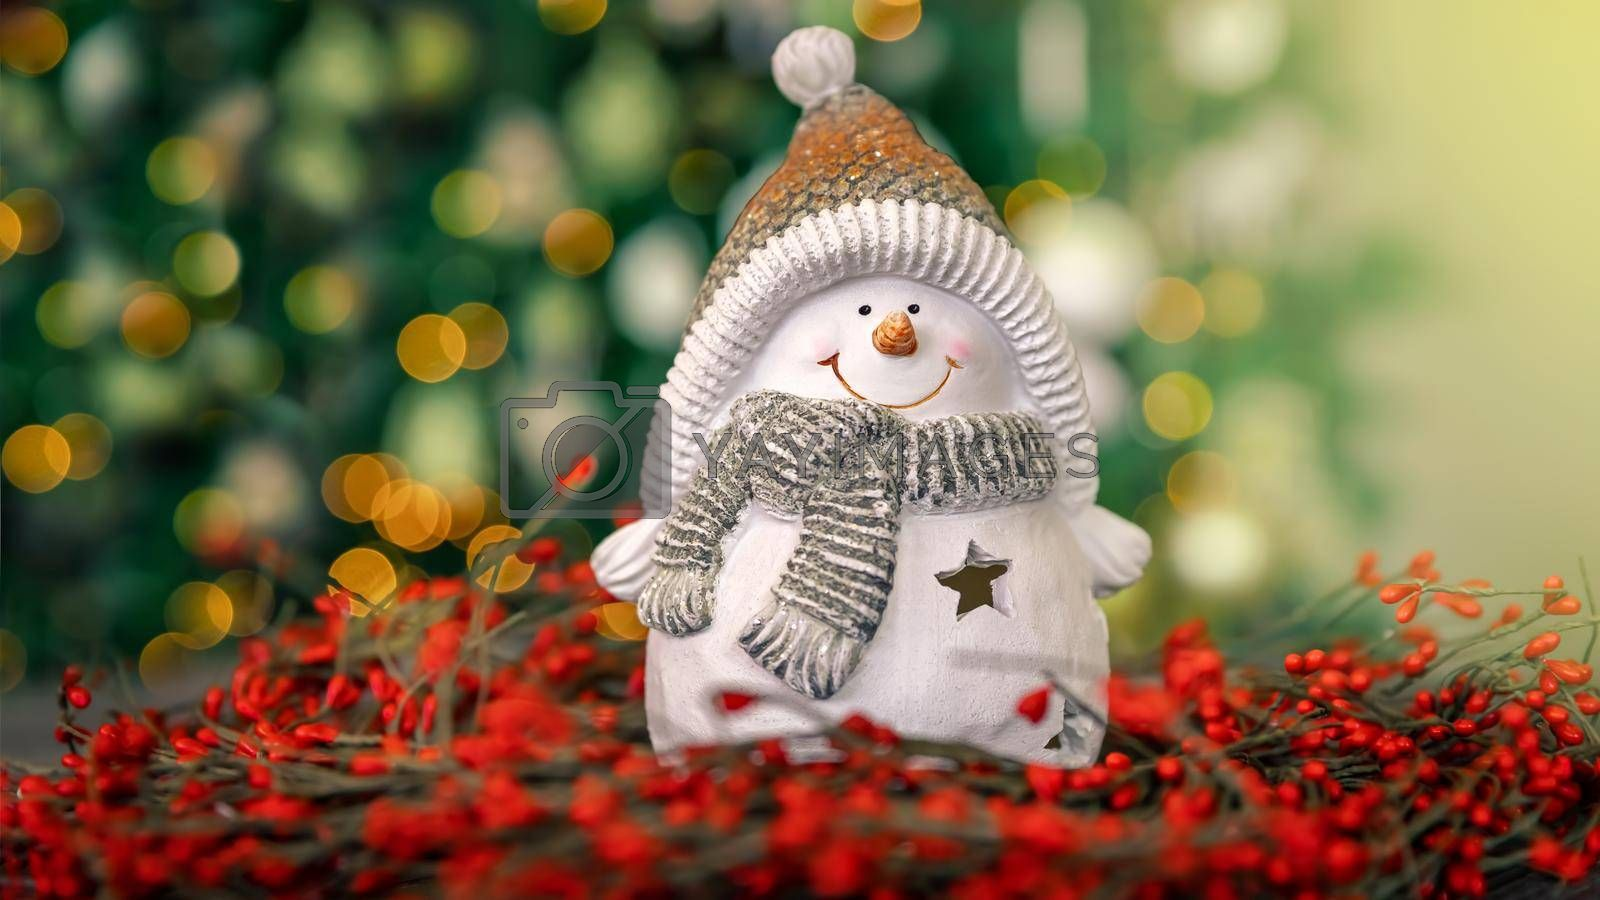 Nice Little Snowman Candlestick on the Table over Decorated Glowing Christmas Tree Bokeh Lights Background. Happy Winter Holidays at Home. Merry Christmas and Happy New Year